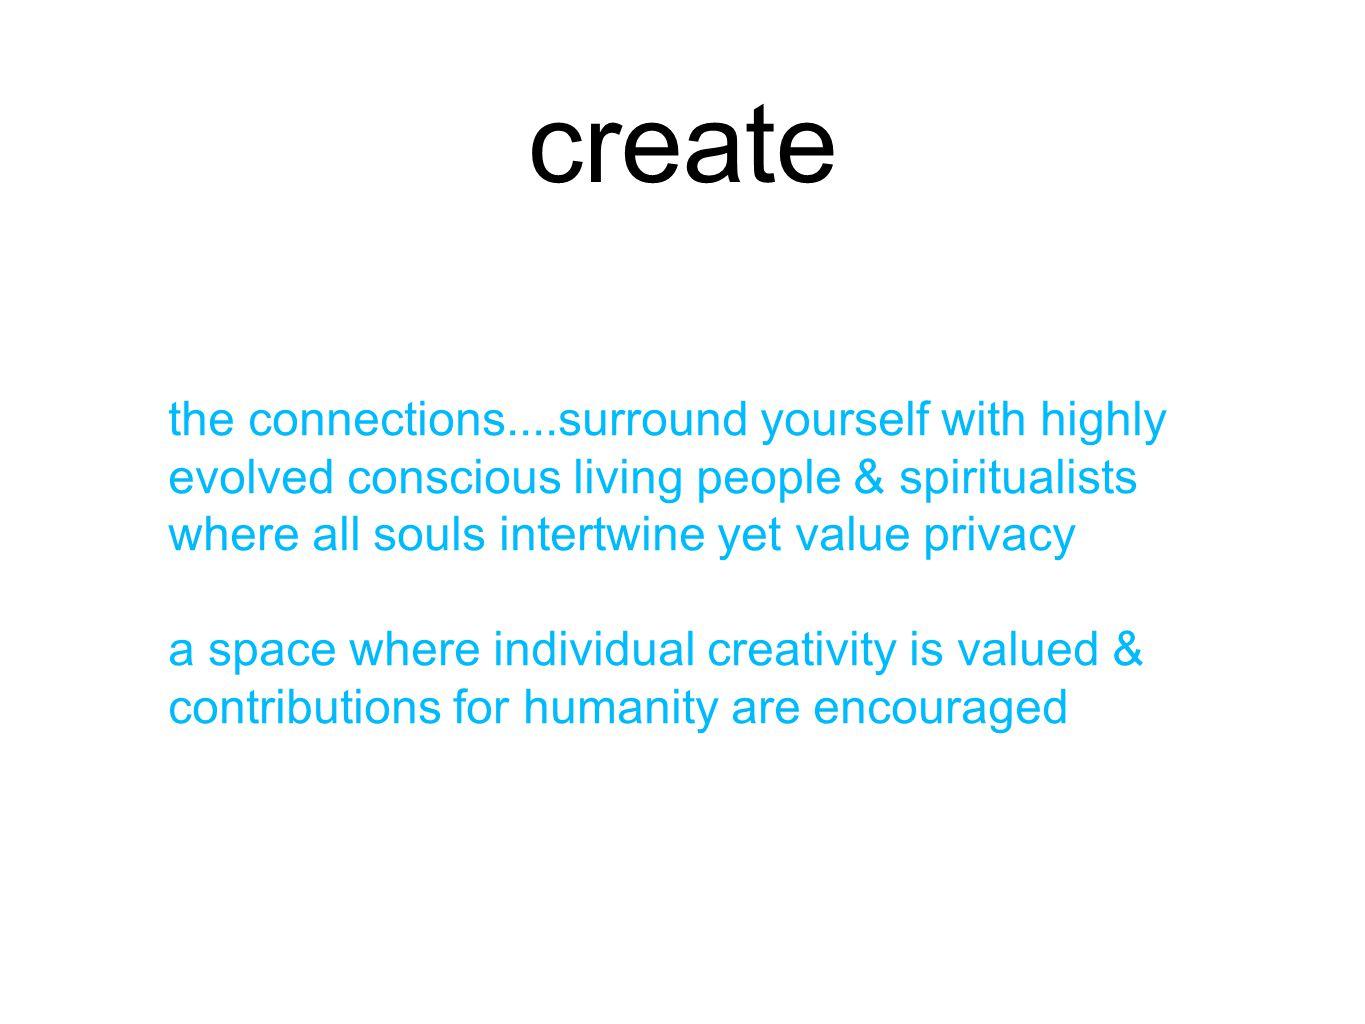 create the connections....surround yourself with highly evolved conscious living people & spiritualists where all souls intertwine yet value privacy a space where individual creativity is valued & contributions for humanity are encouraged